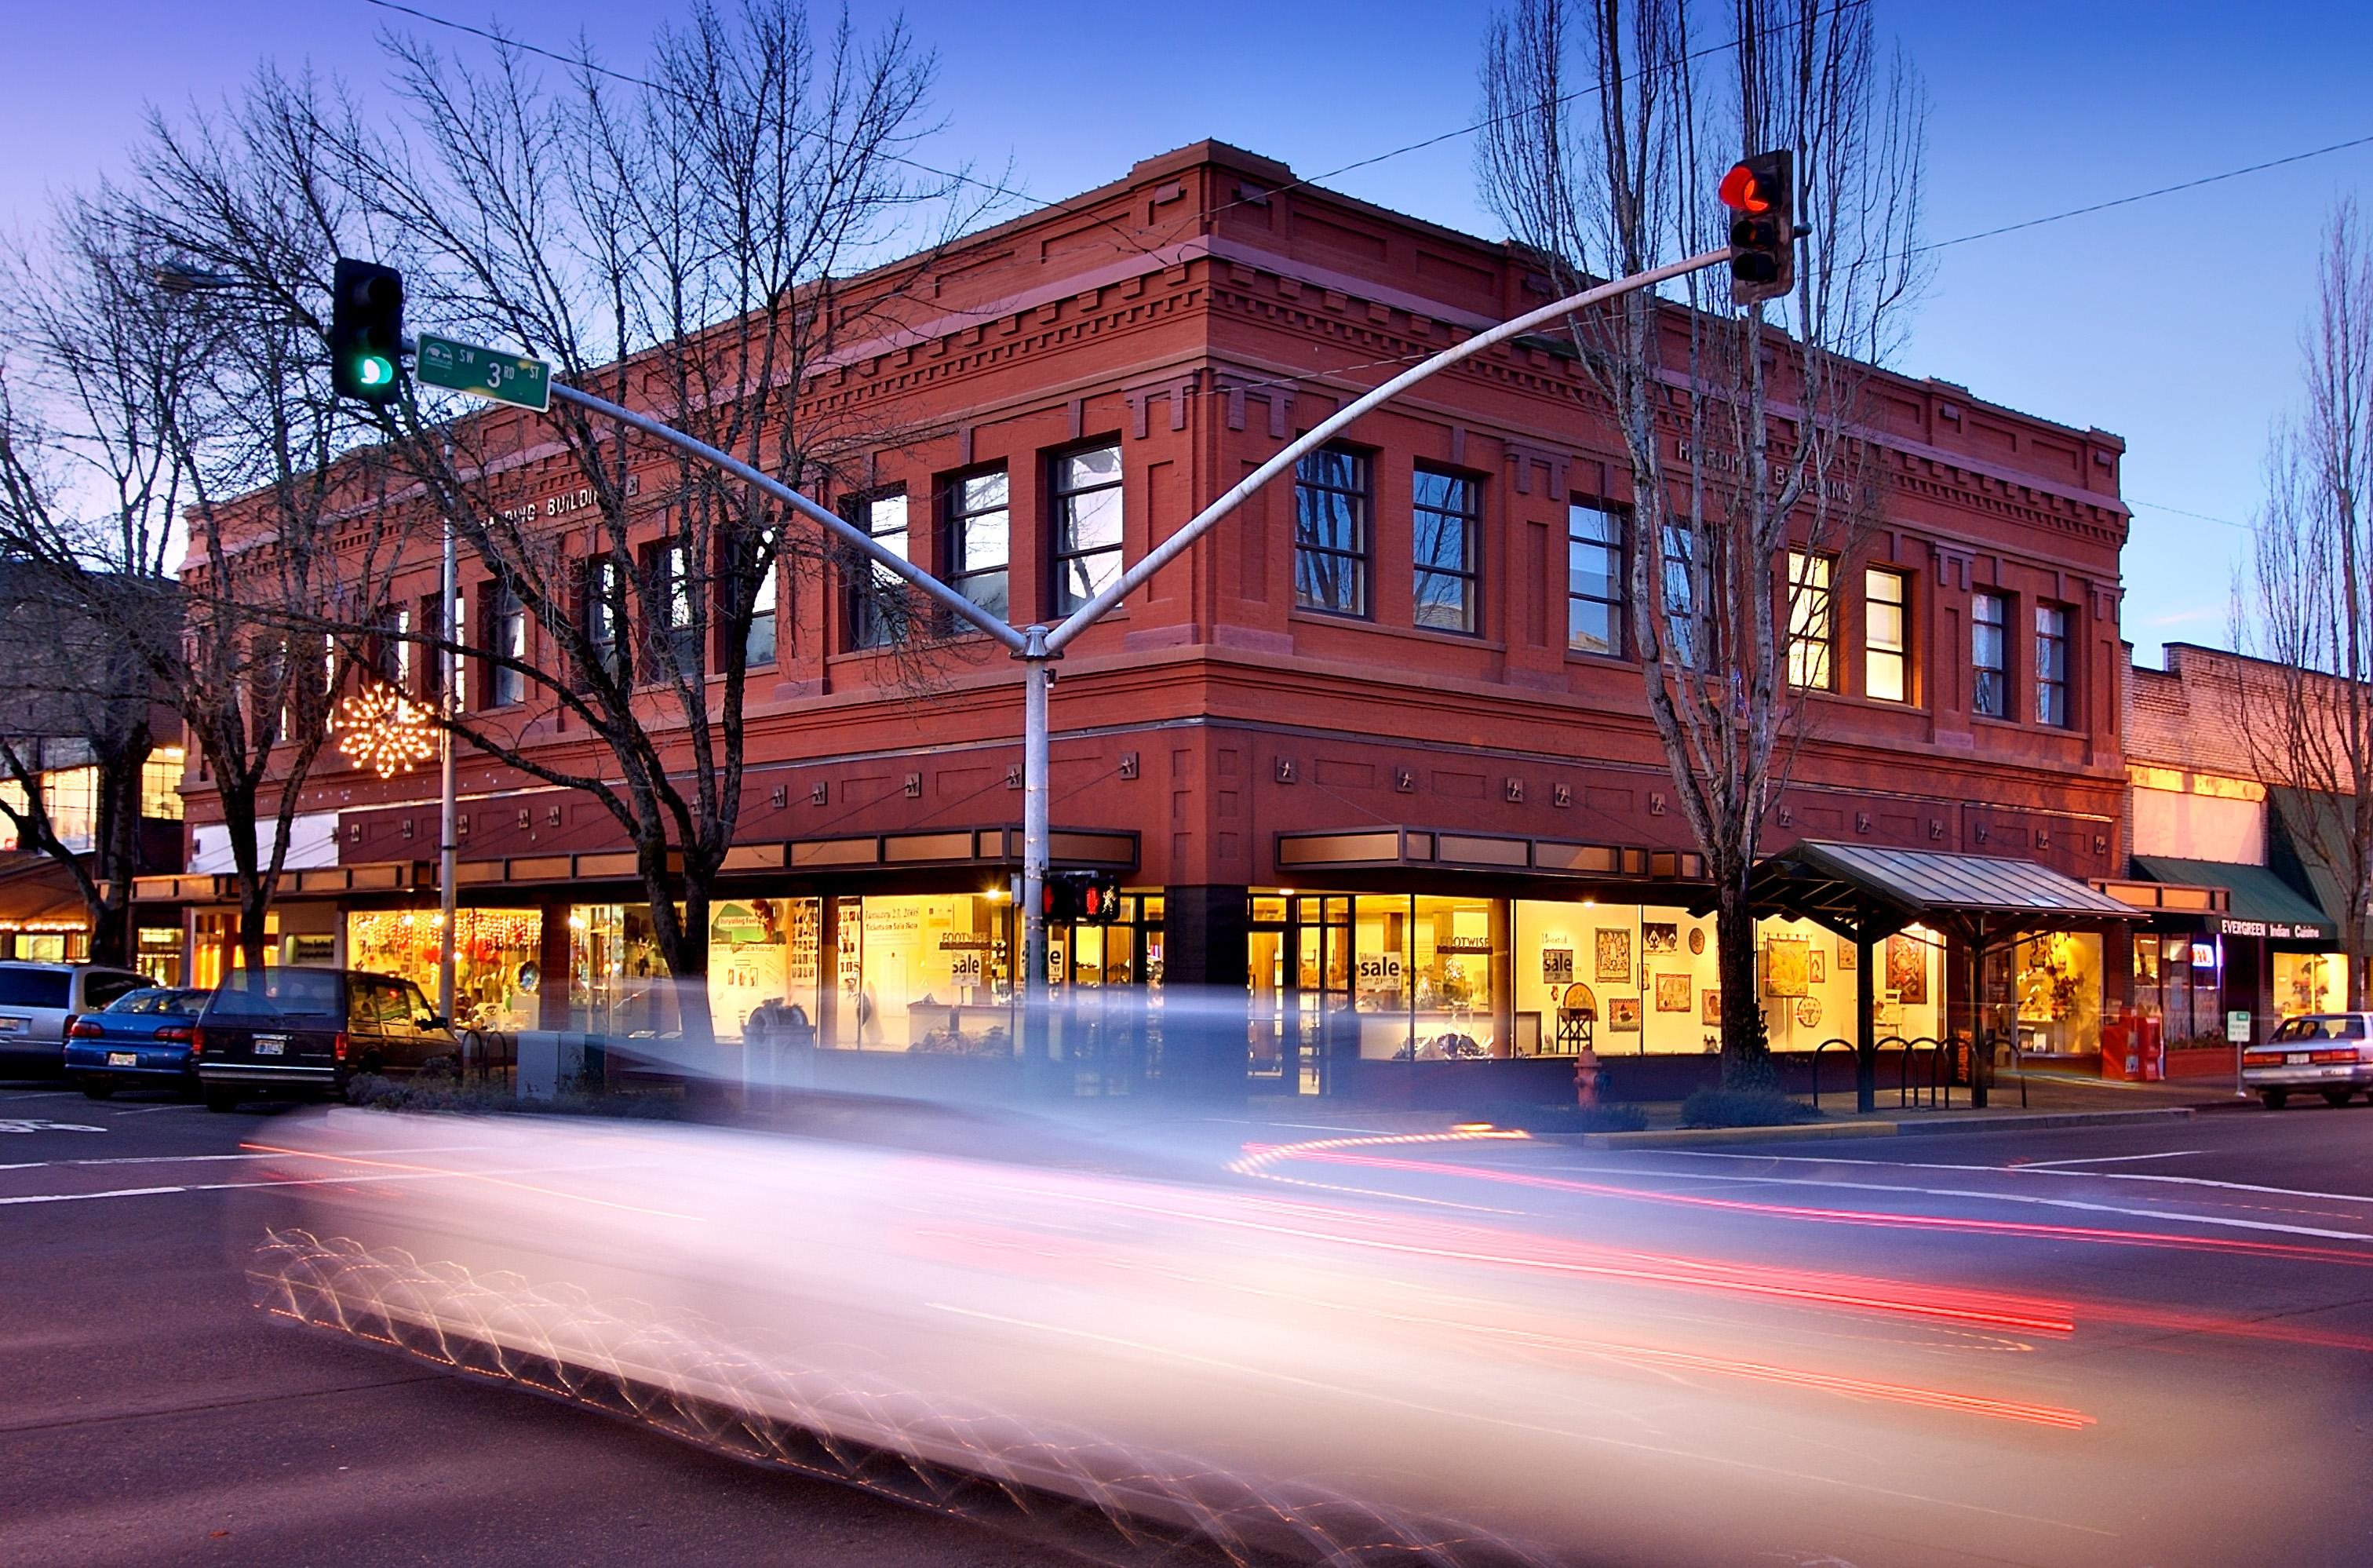 Downtown Corvallis is a 10-minute drive from Norwood Drive Flat